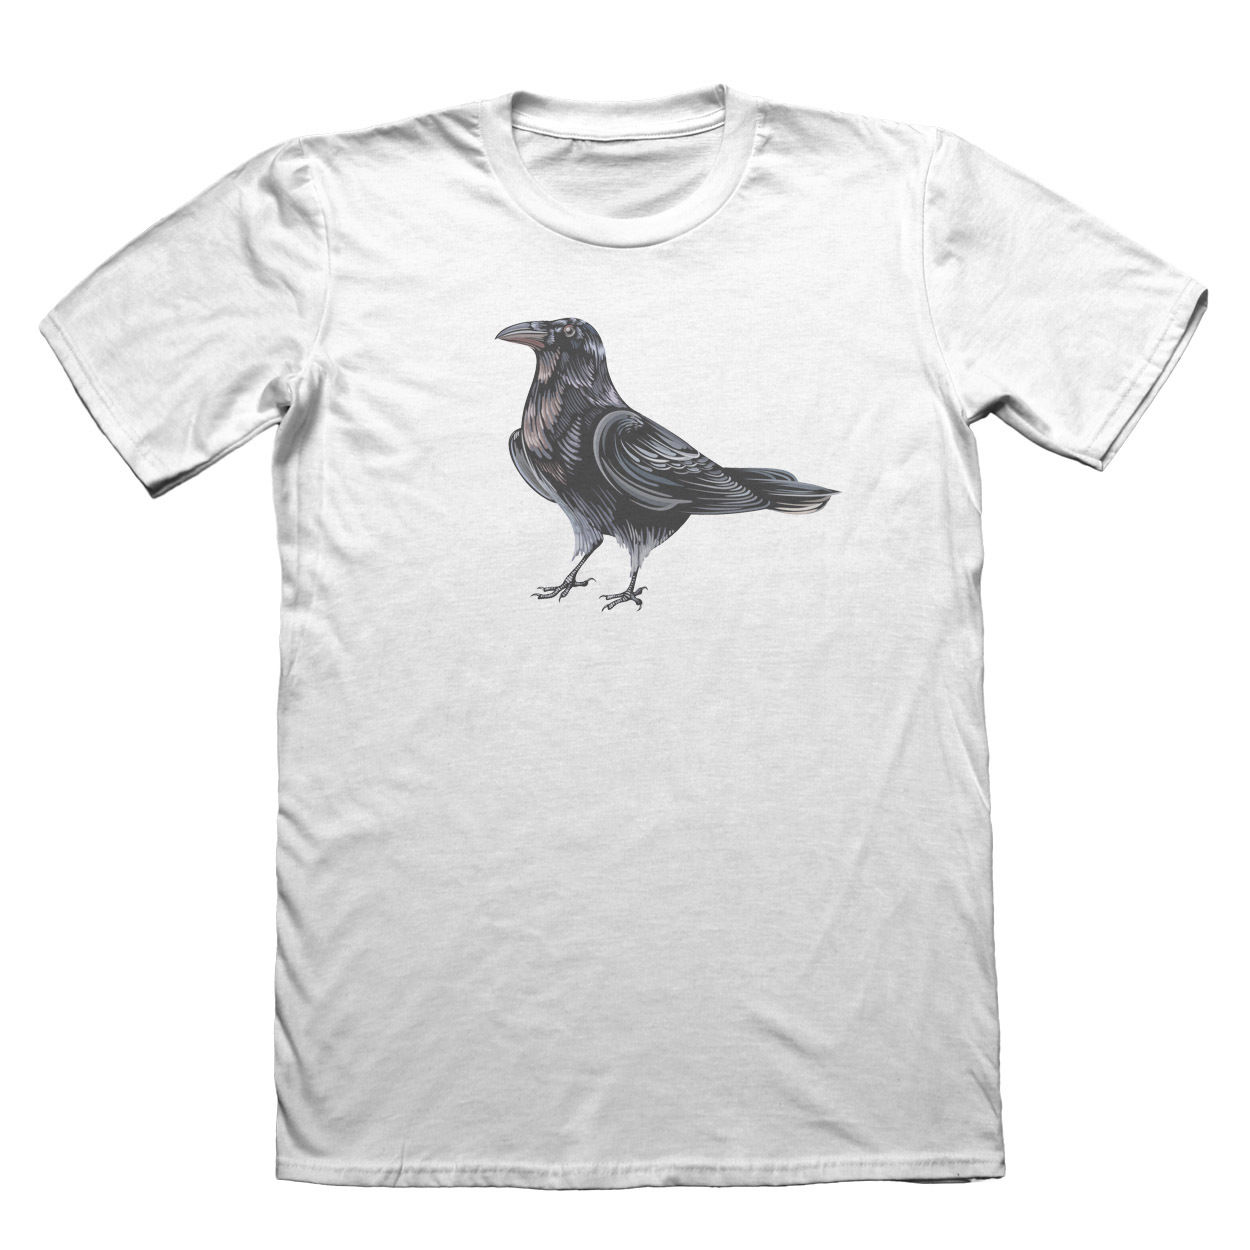 Raven Crow Design T-Shirt - Mens Fathers Day Christmas #9191